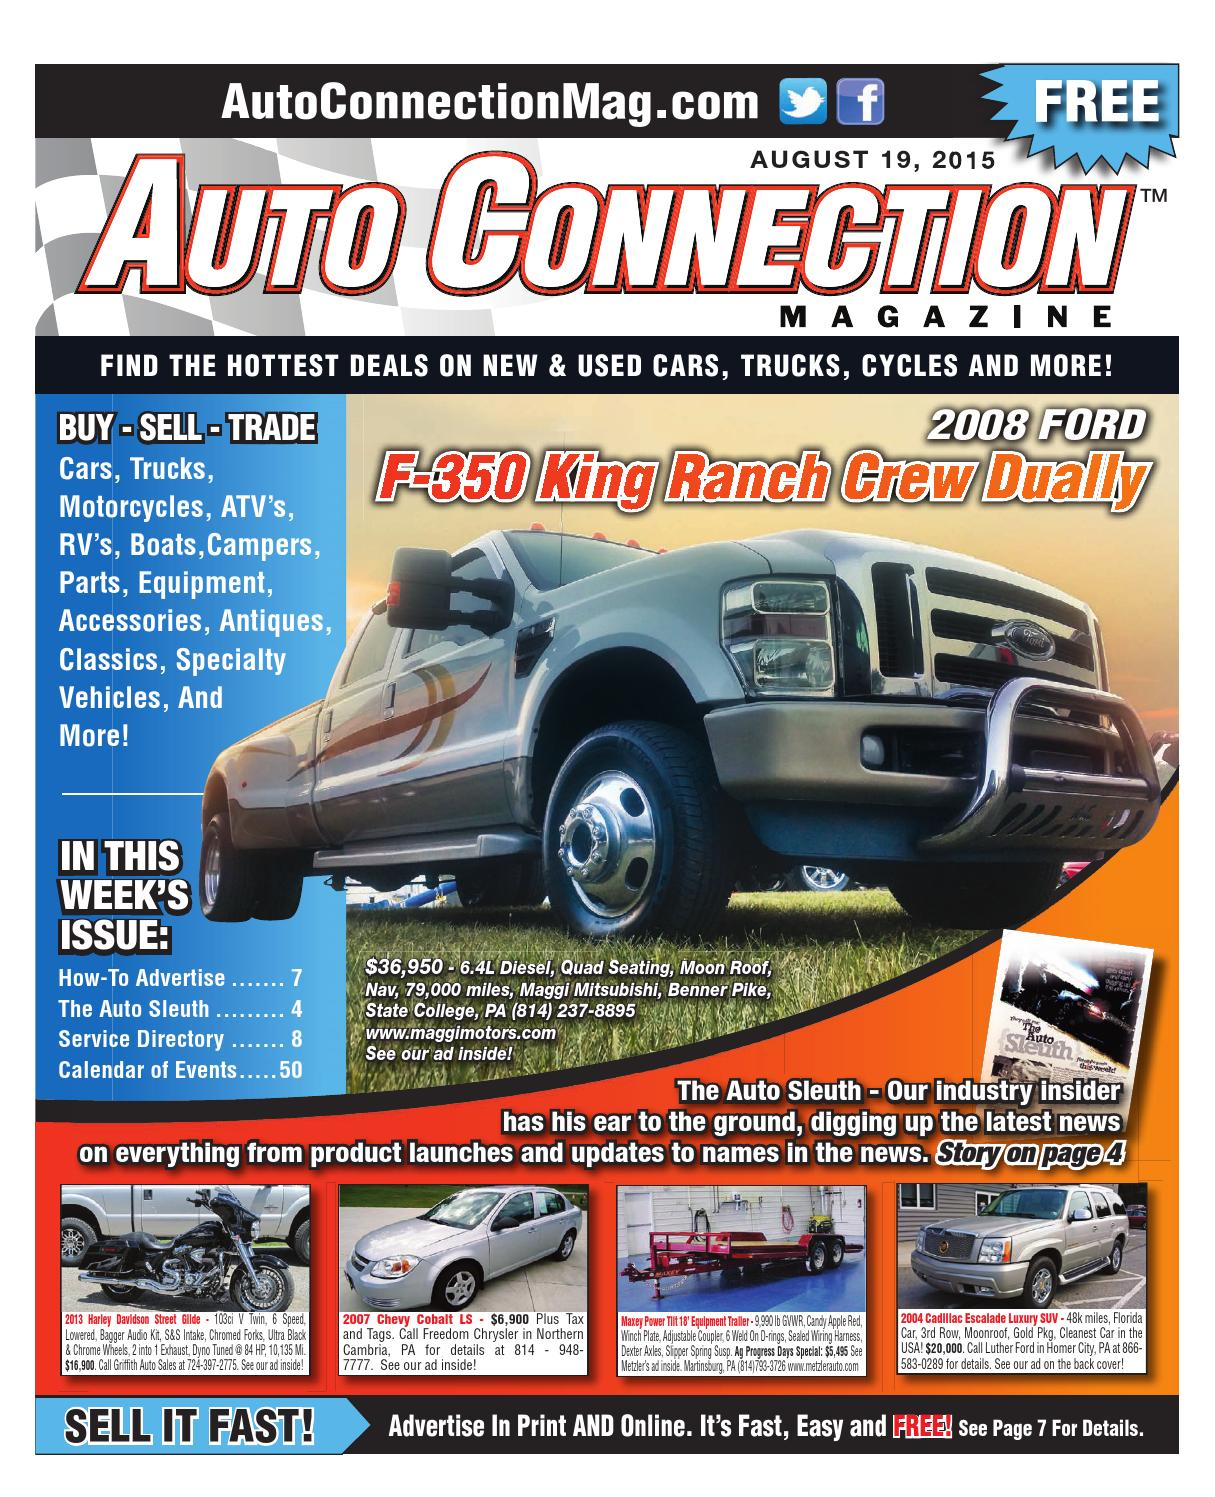 08 19 15 Auto Connection Magazine By Issuu Painless Wiring Harness 2005 Envoy